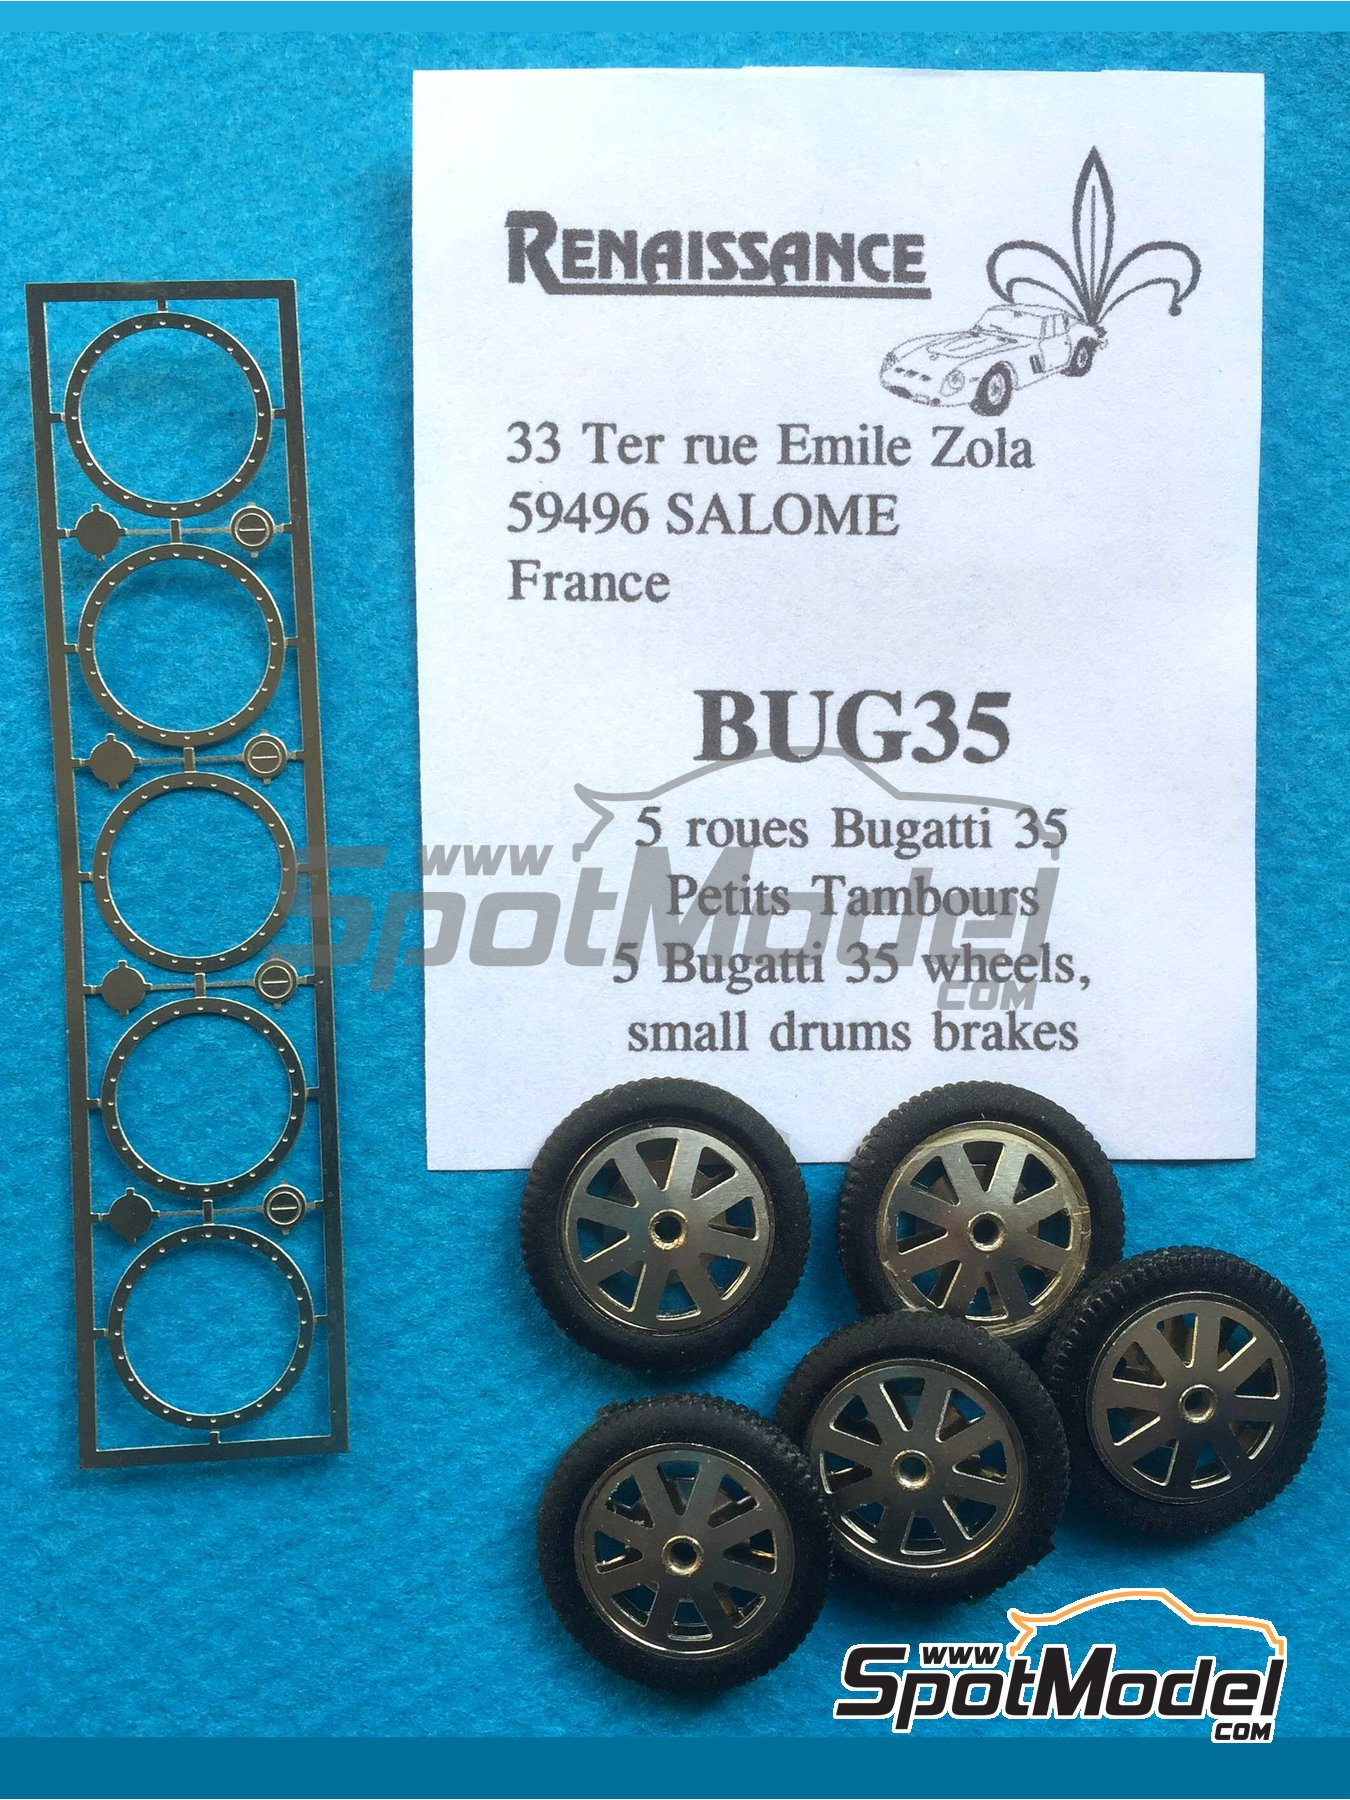 Bugatti 35 rims and tyres with small brake | Rims and tyres set in 1/43 scale manufactured by Renaissance Models (ref. BUG35) image